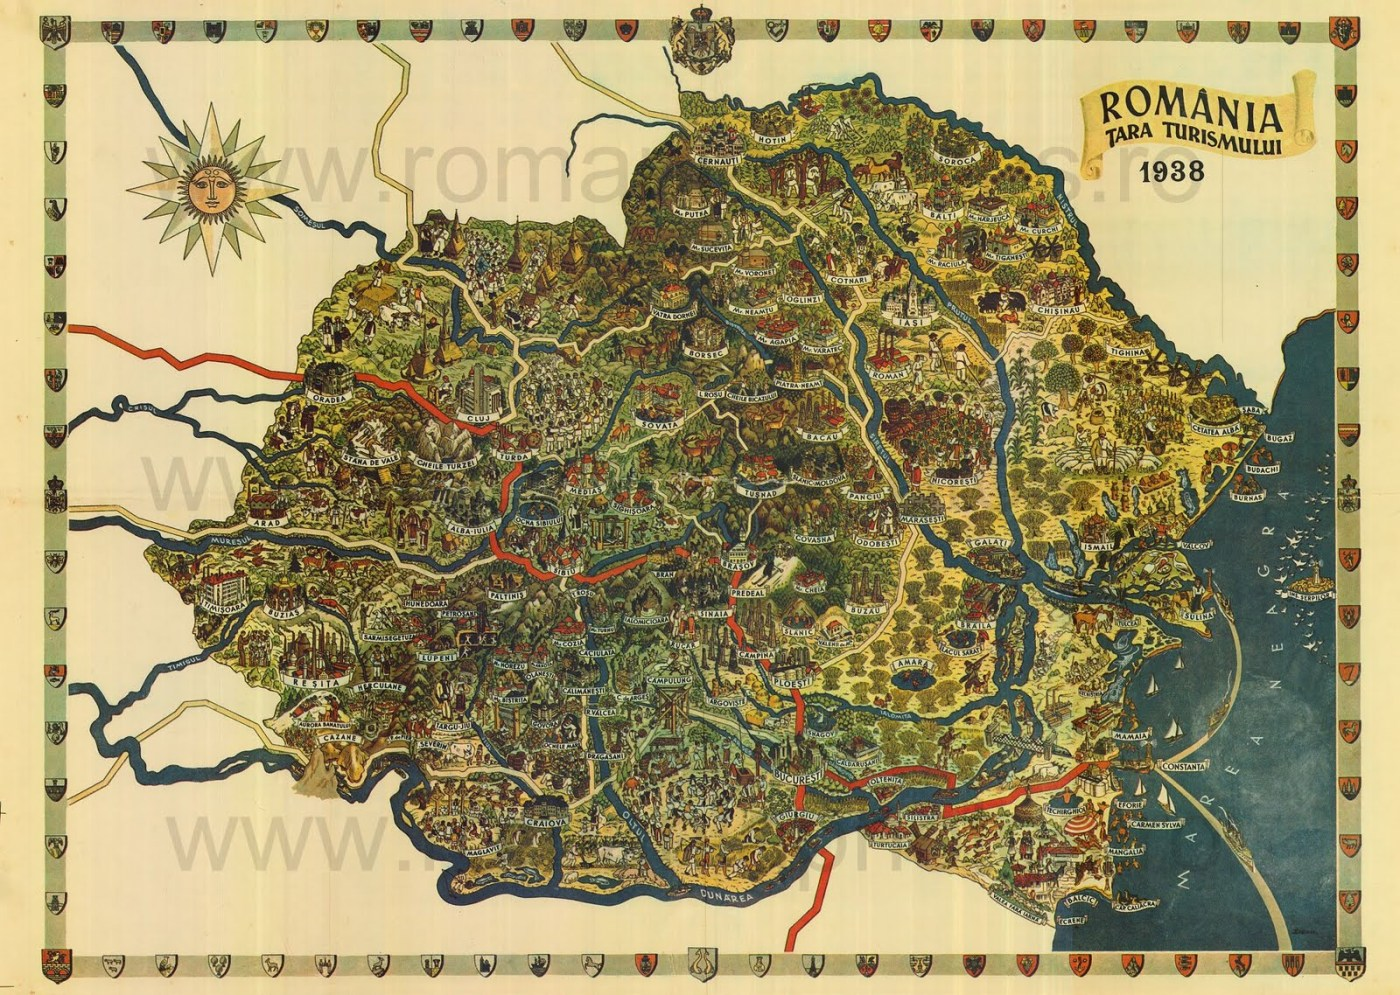 Romanian Tourism Map Of 1938 Map Collection